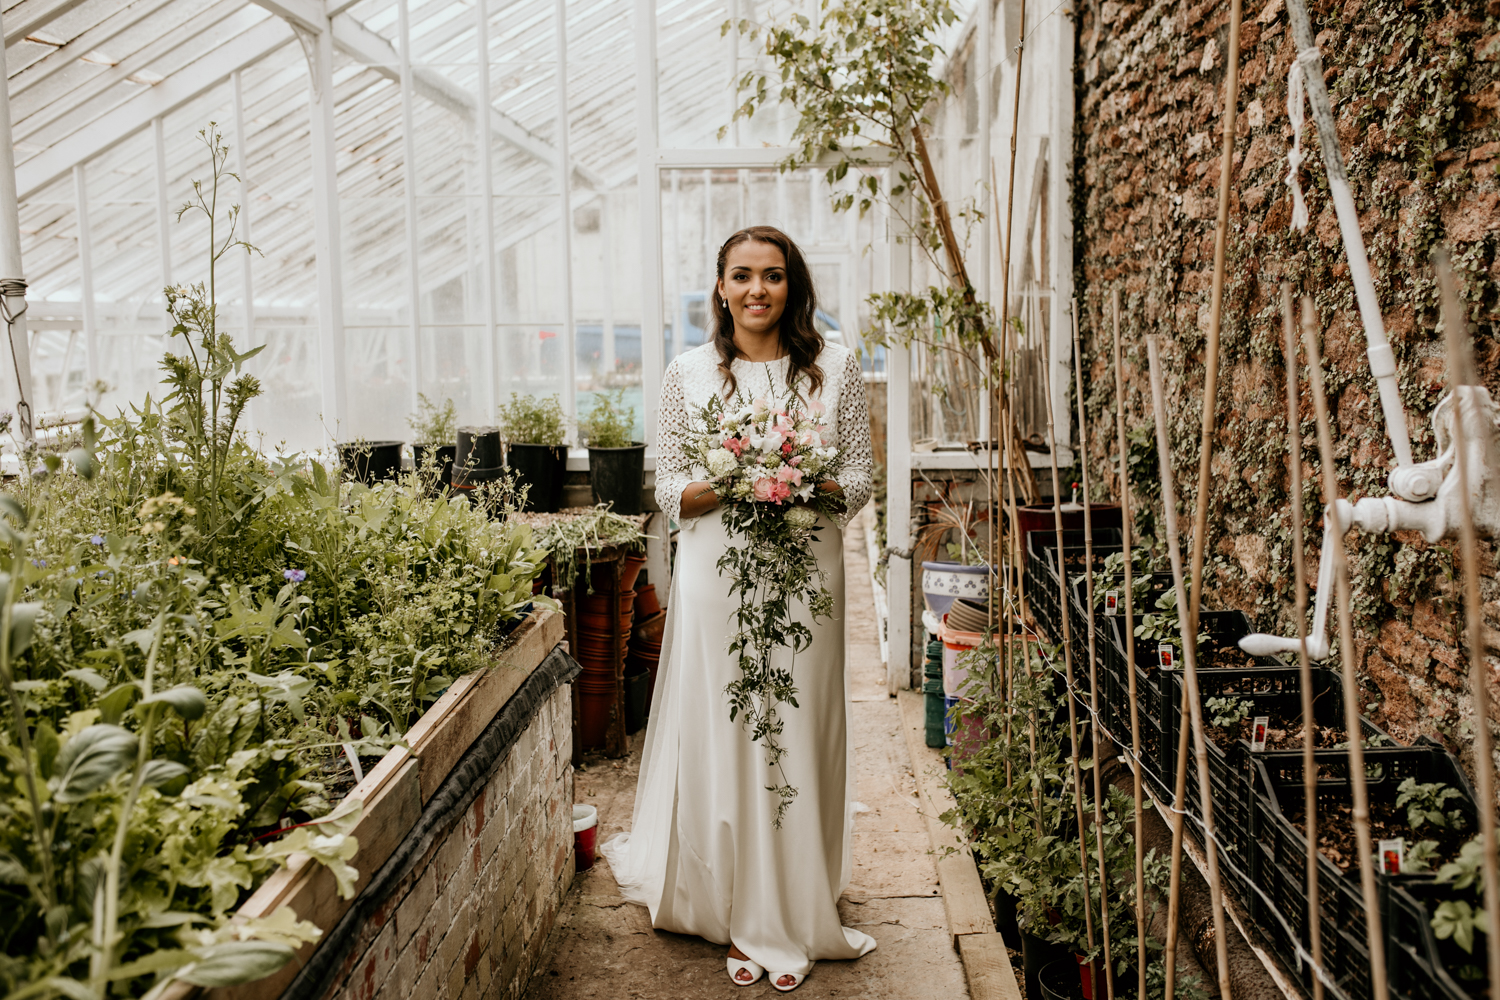 beautiful bride wearing a charlie brear simple wedding dress at Coombe Lodge Blagdon wedding venue